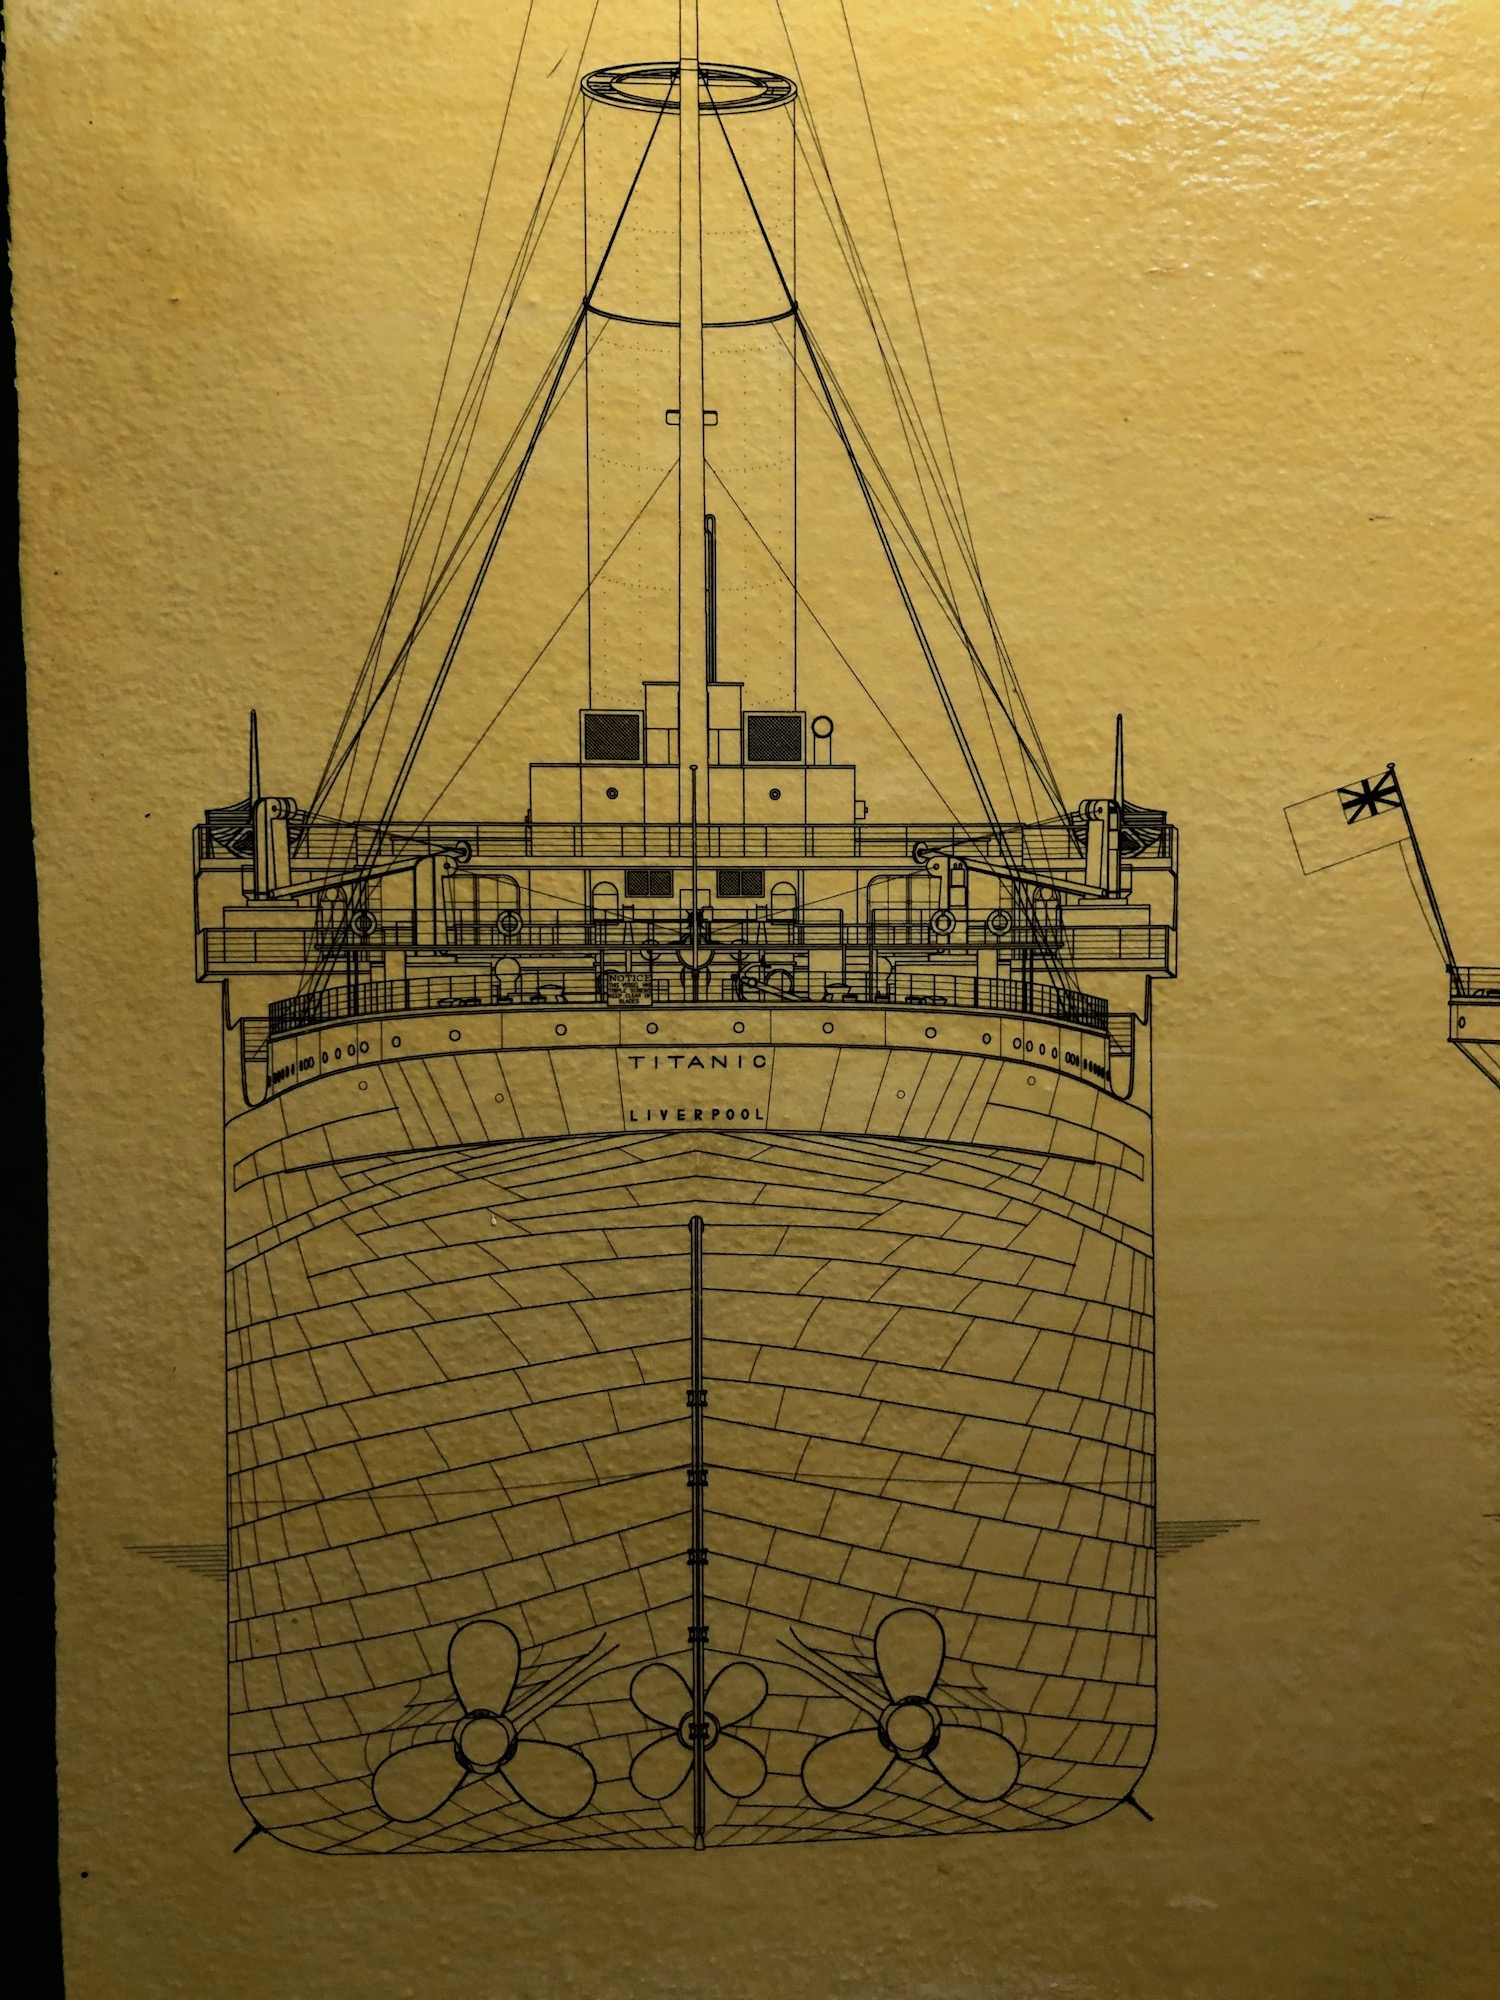 Blueprint of RMS Titanic at The Grapes Southampton